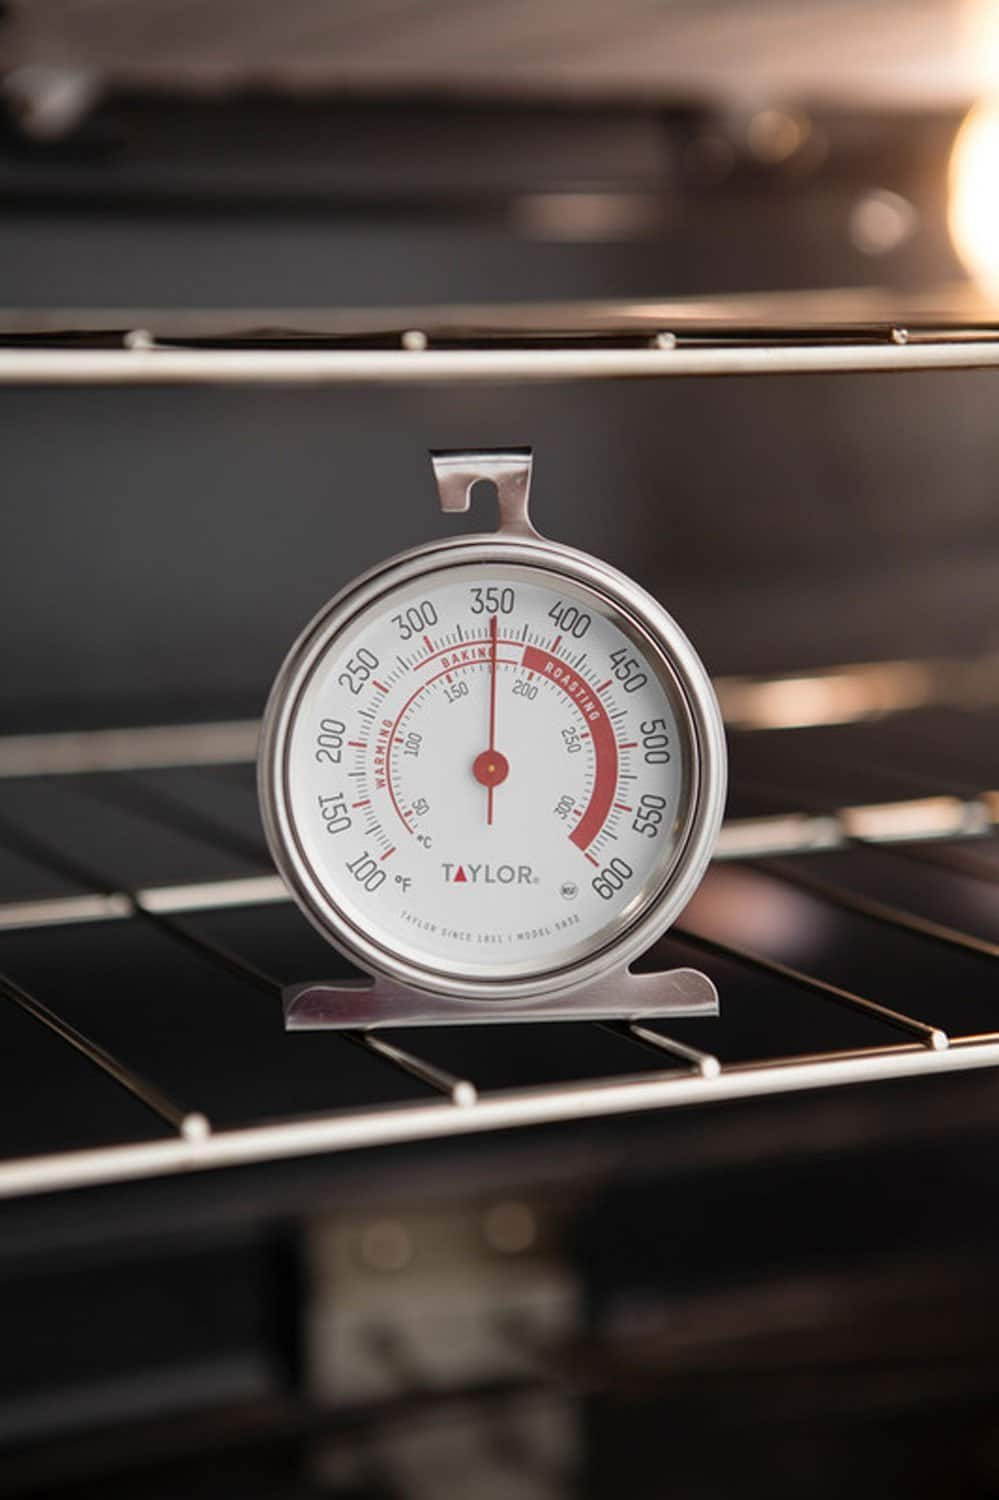 Taylor Classic Series Large Dial Oven Thermometer [Oven] $4.36